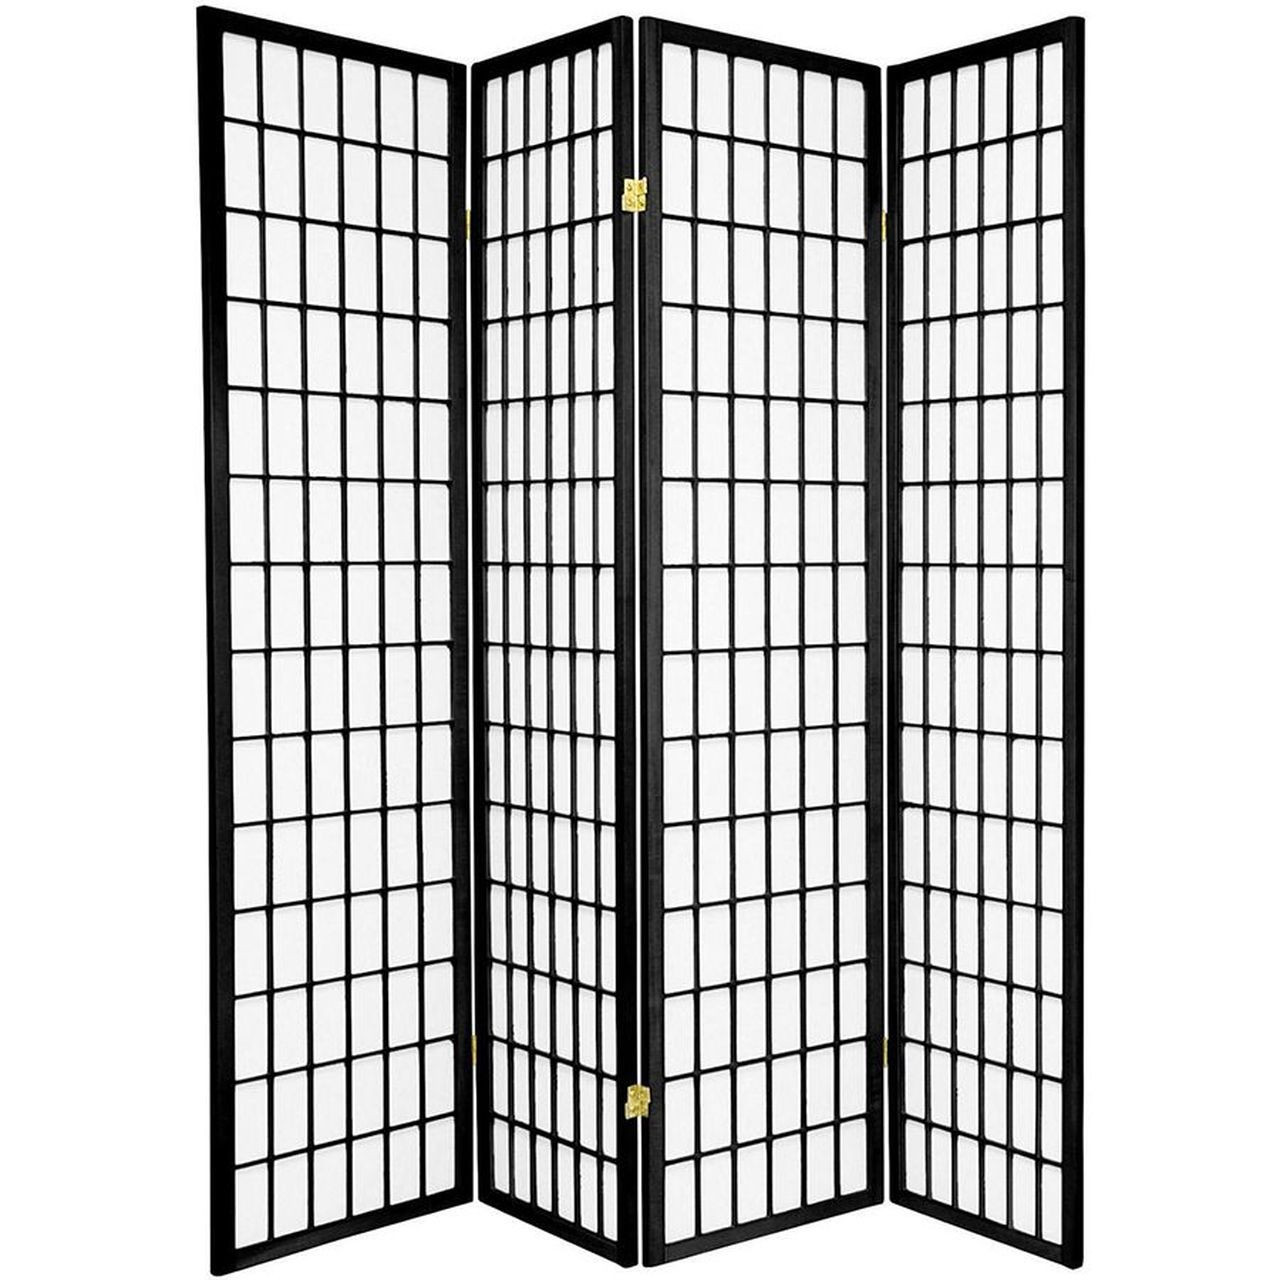 4 panels room divider privacy screen